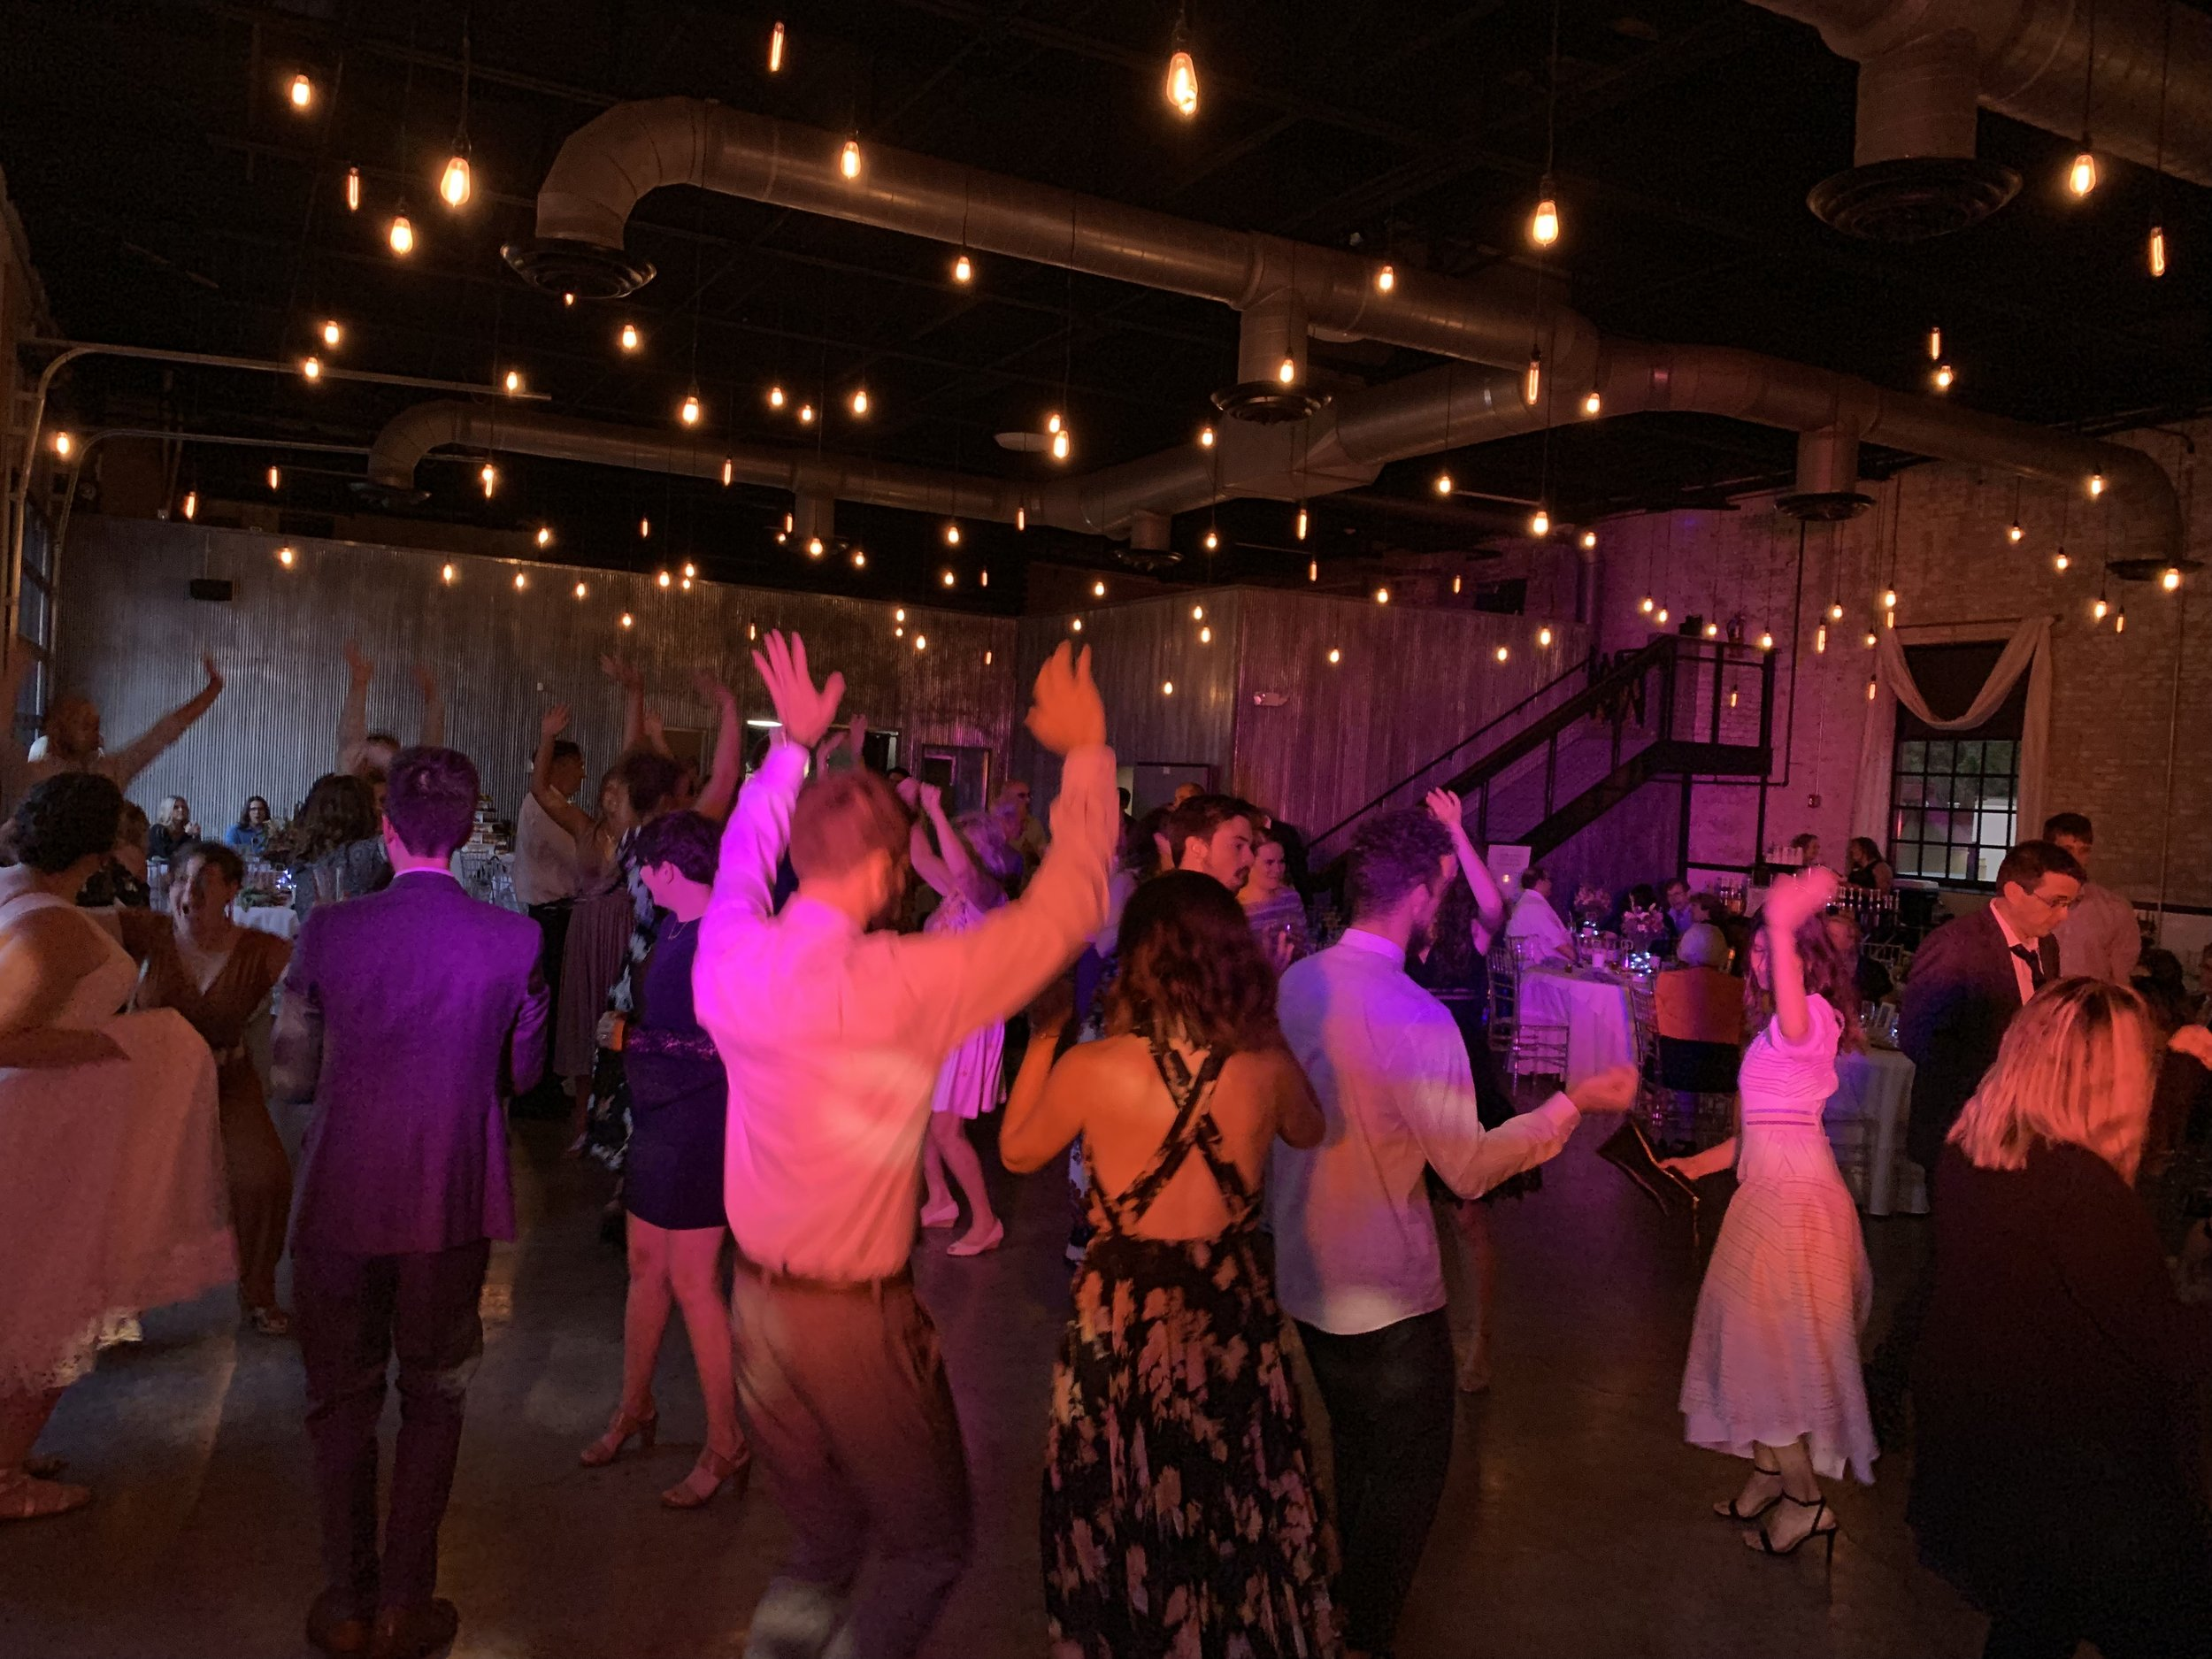 Wedding DJ at the Brick in South Bend, IN